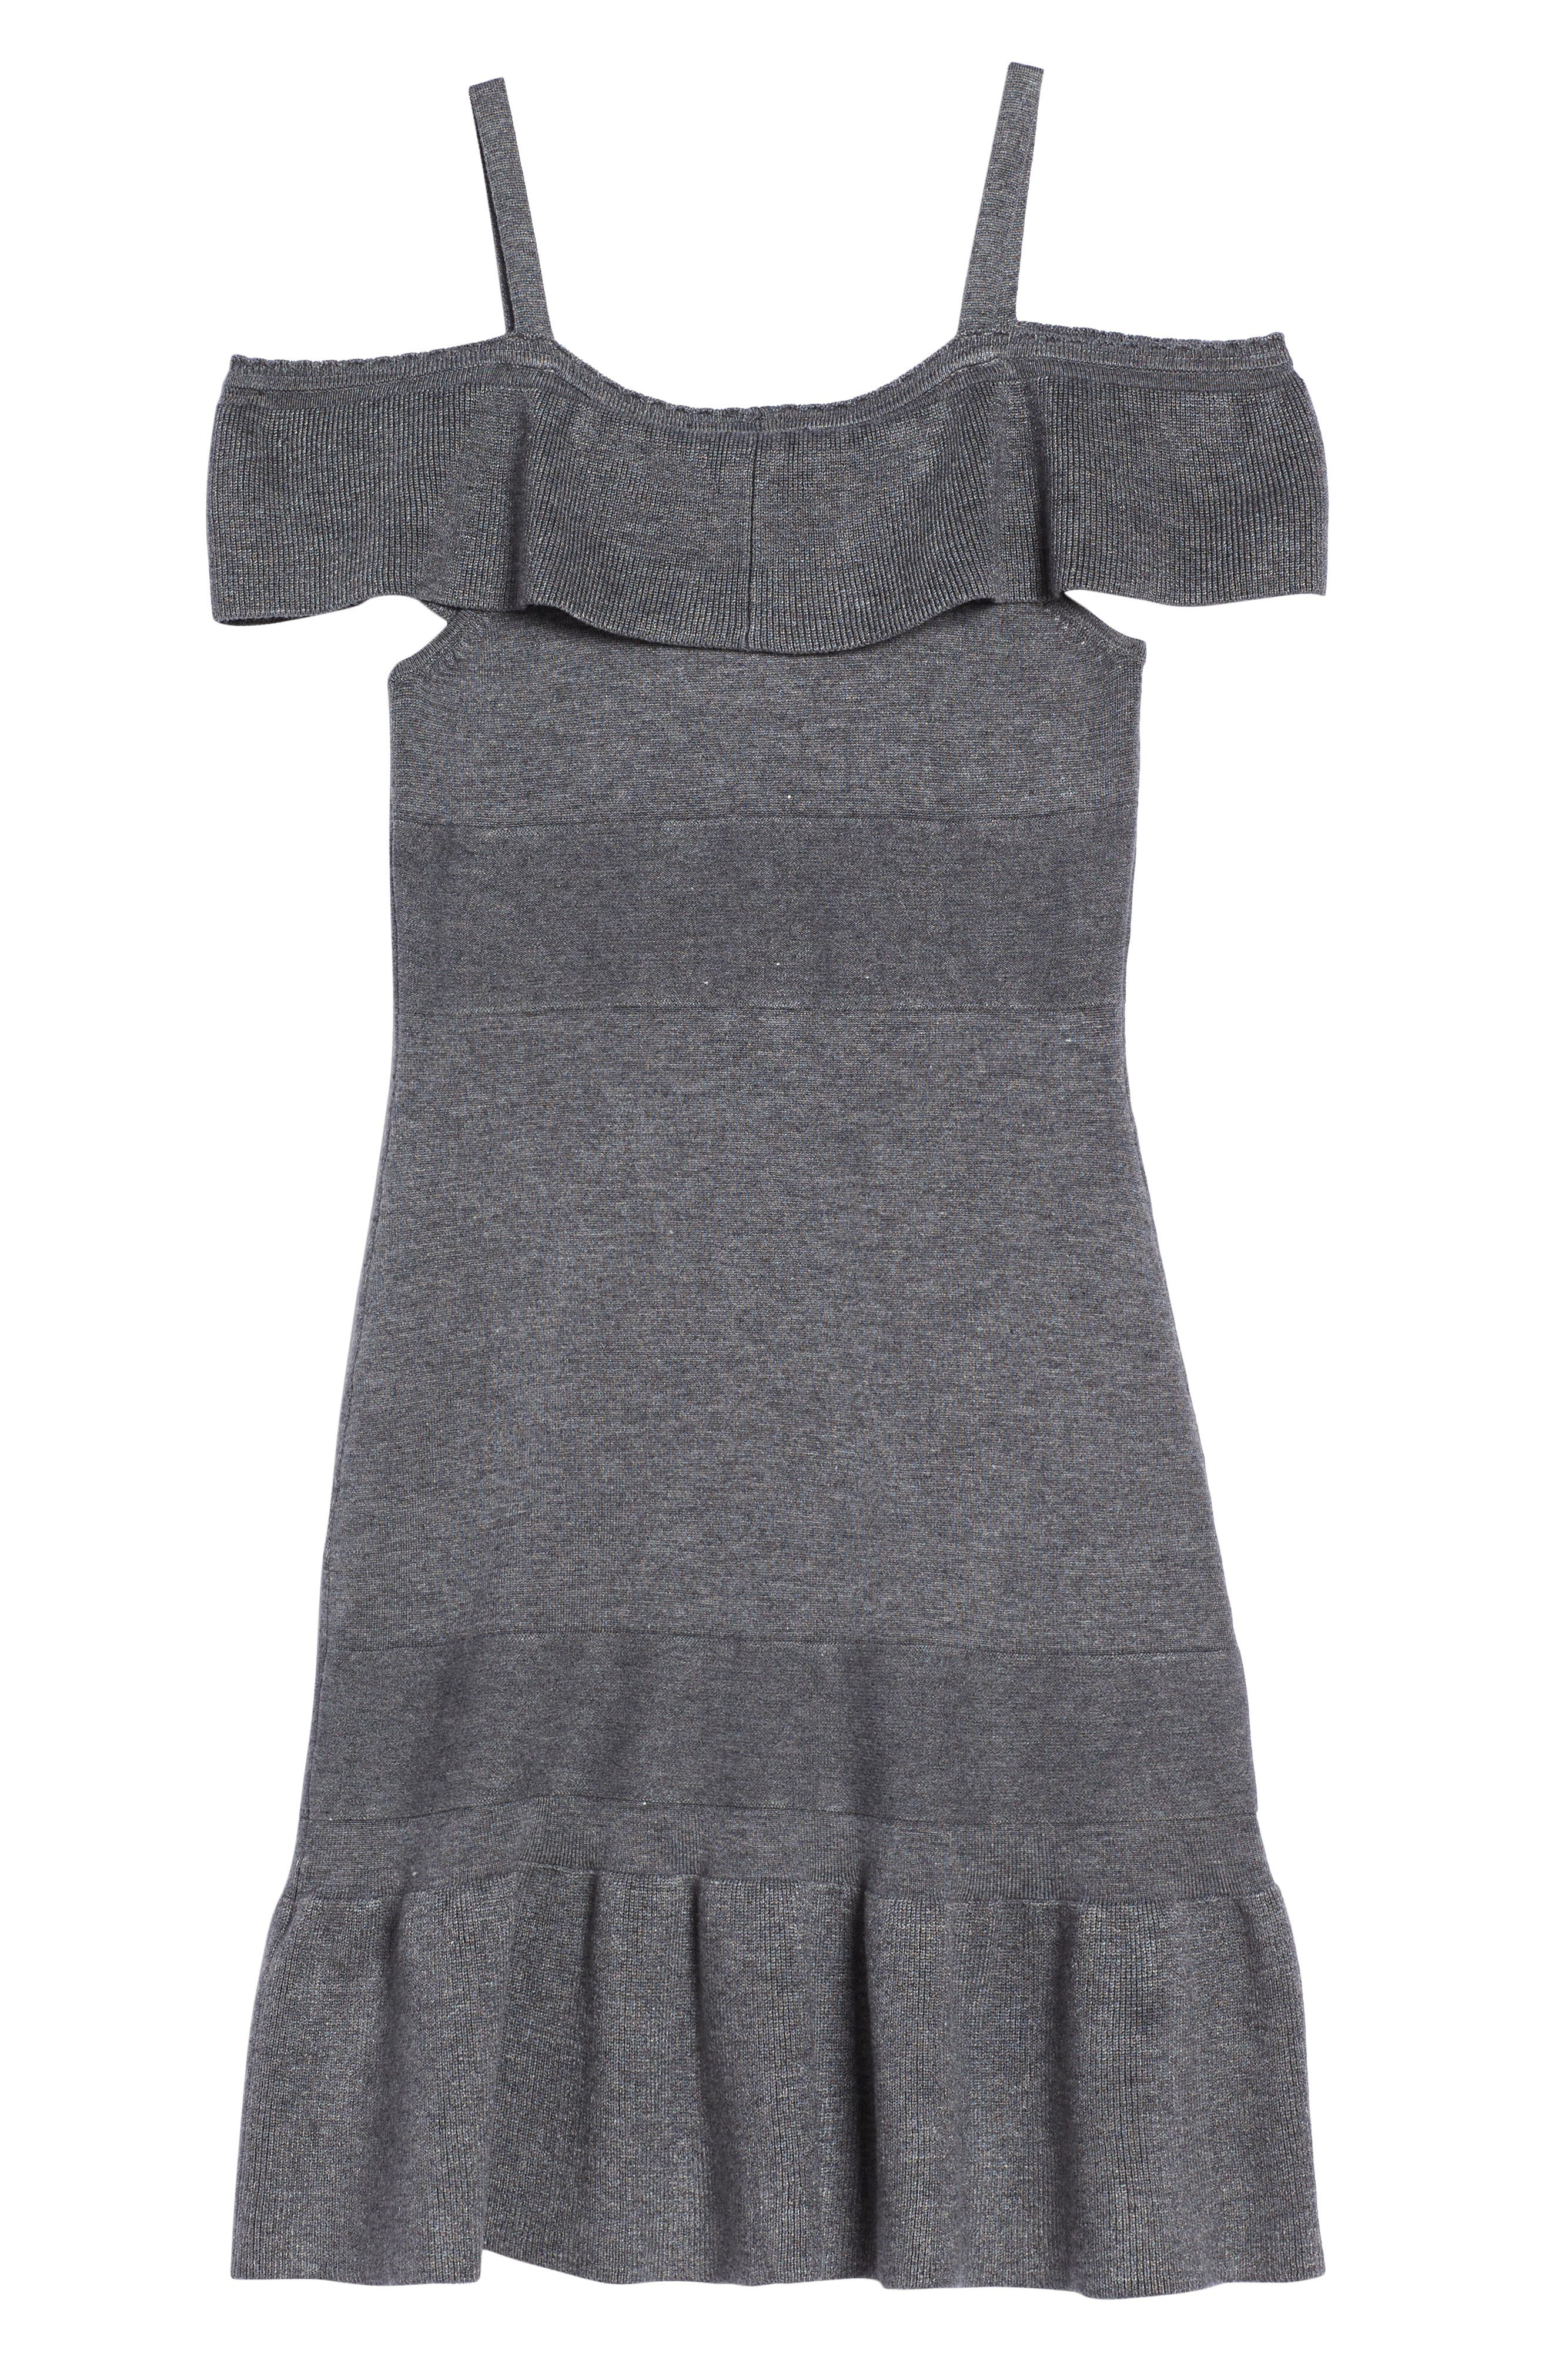 Alternate Image 2  - bebe Ruffle Cold Shoulder Dress (Big Girls)